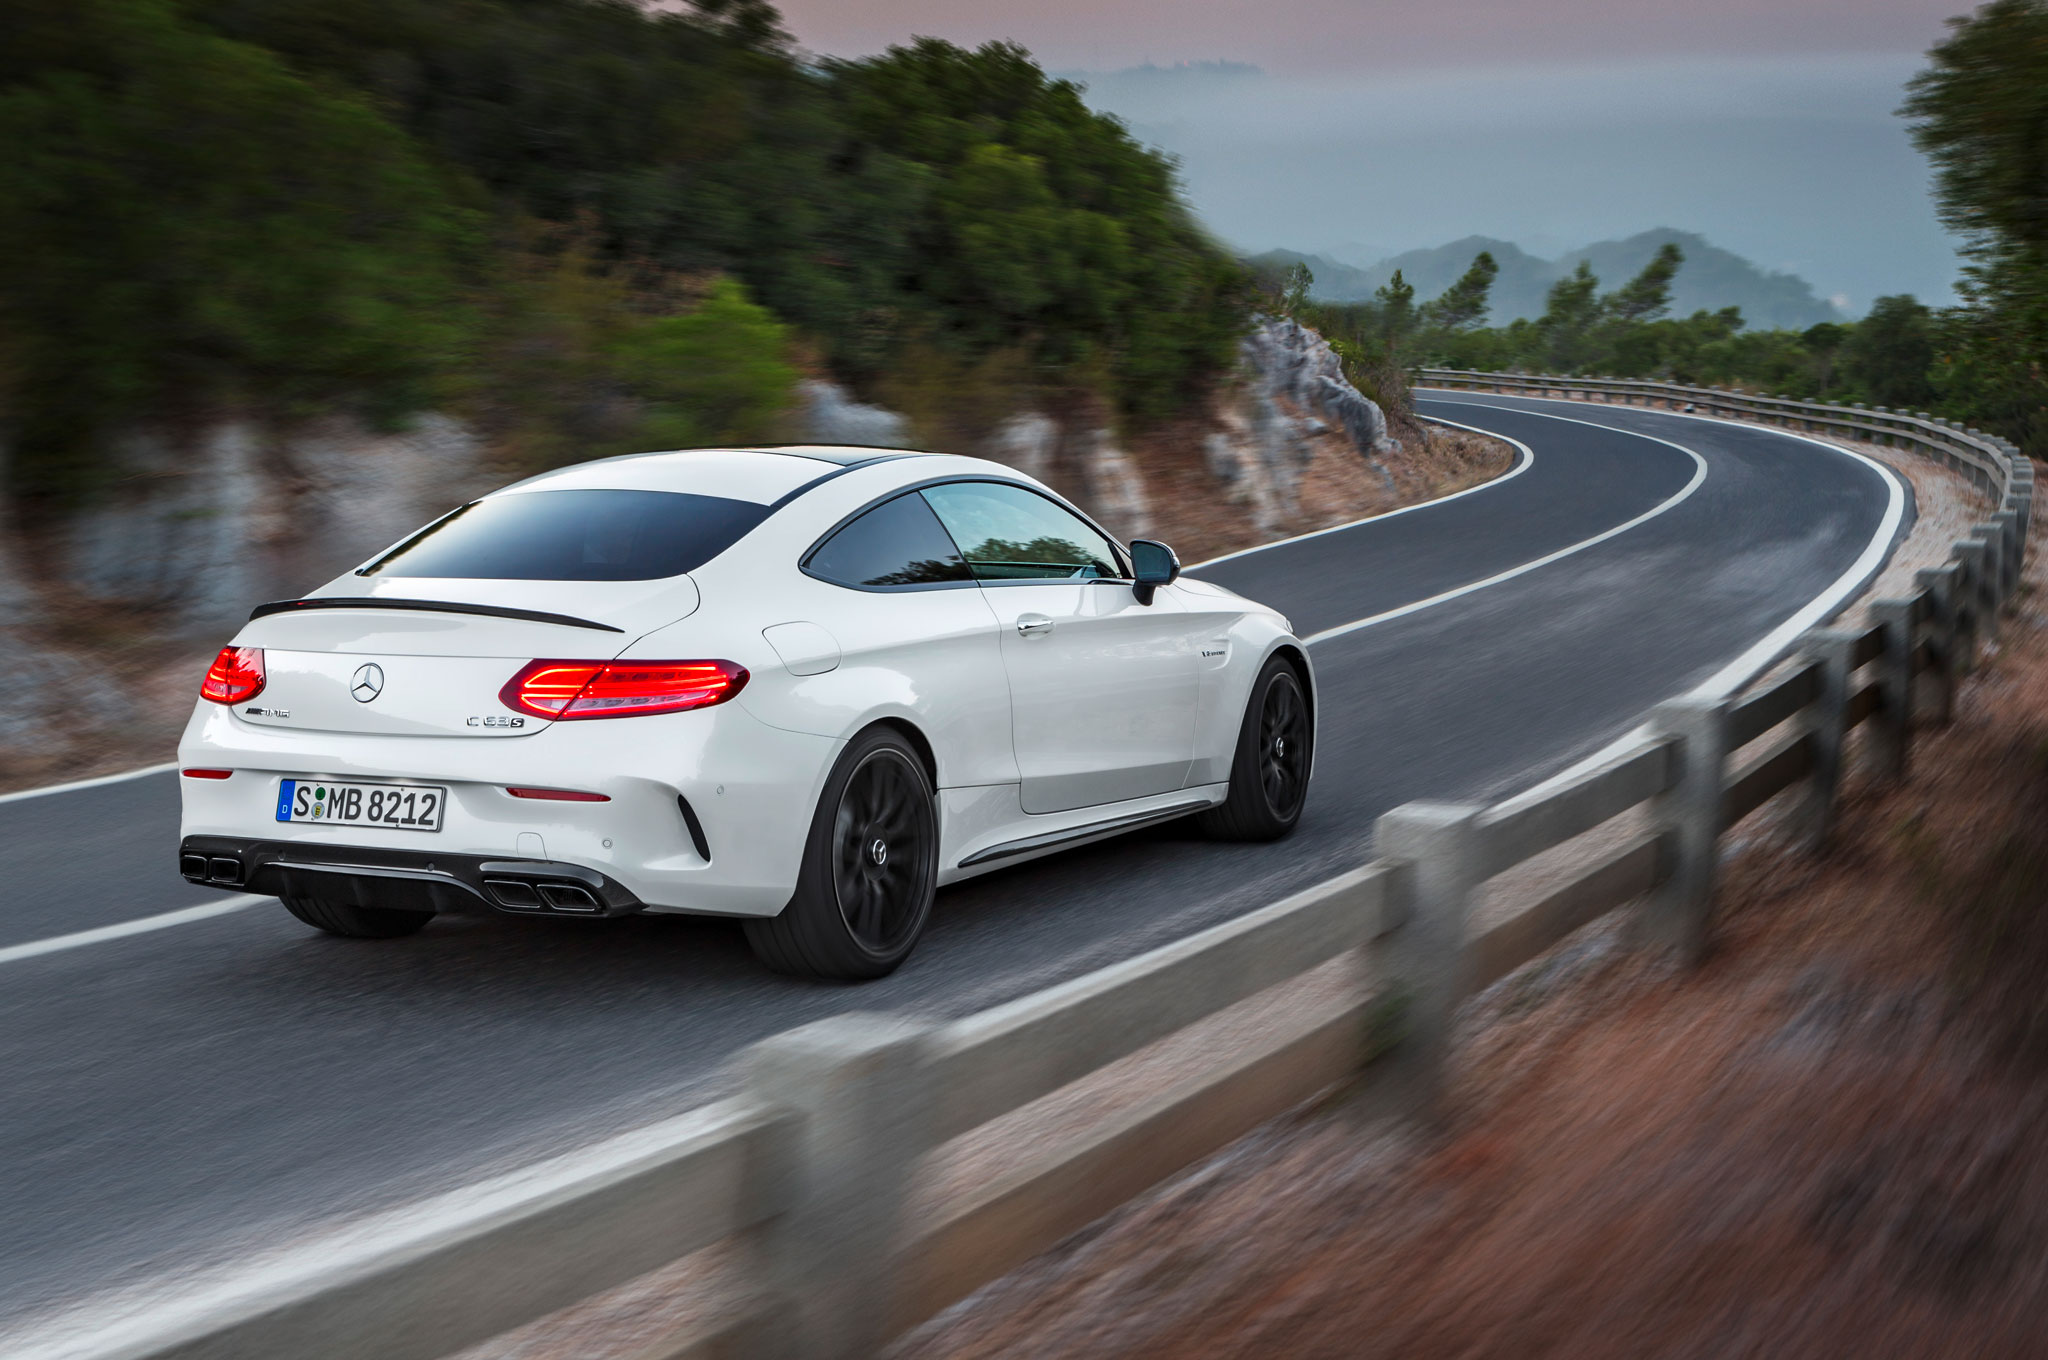 2017 mercedes amg c63 coupe brings twin turbo punch with up to 503 hp. Black Bedroom Furniture Sets. Home Design Ideas